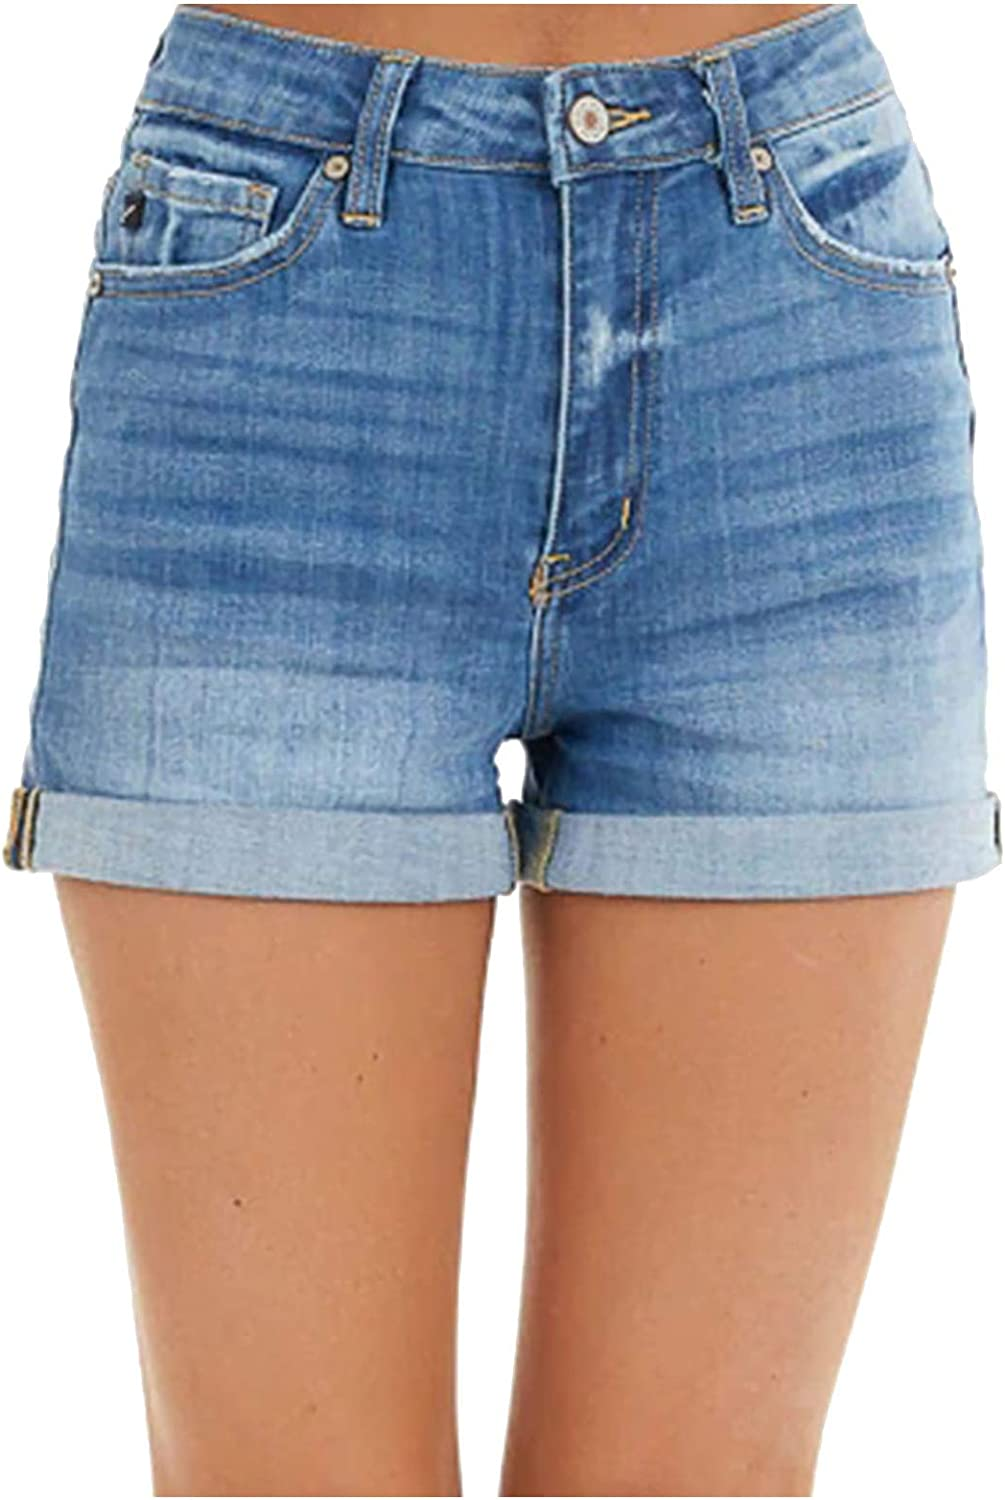 Euone_Clothes Jeans Pant for Women, Women's Rolled-up High-Waist Solid Color Straight Casual Jeans Shorts